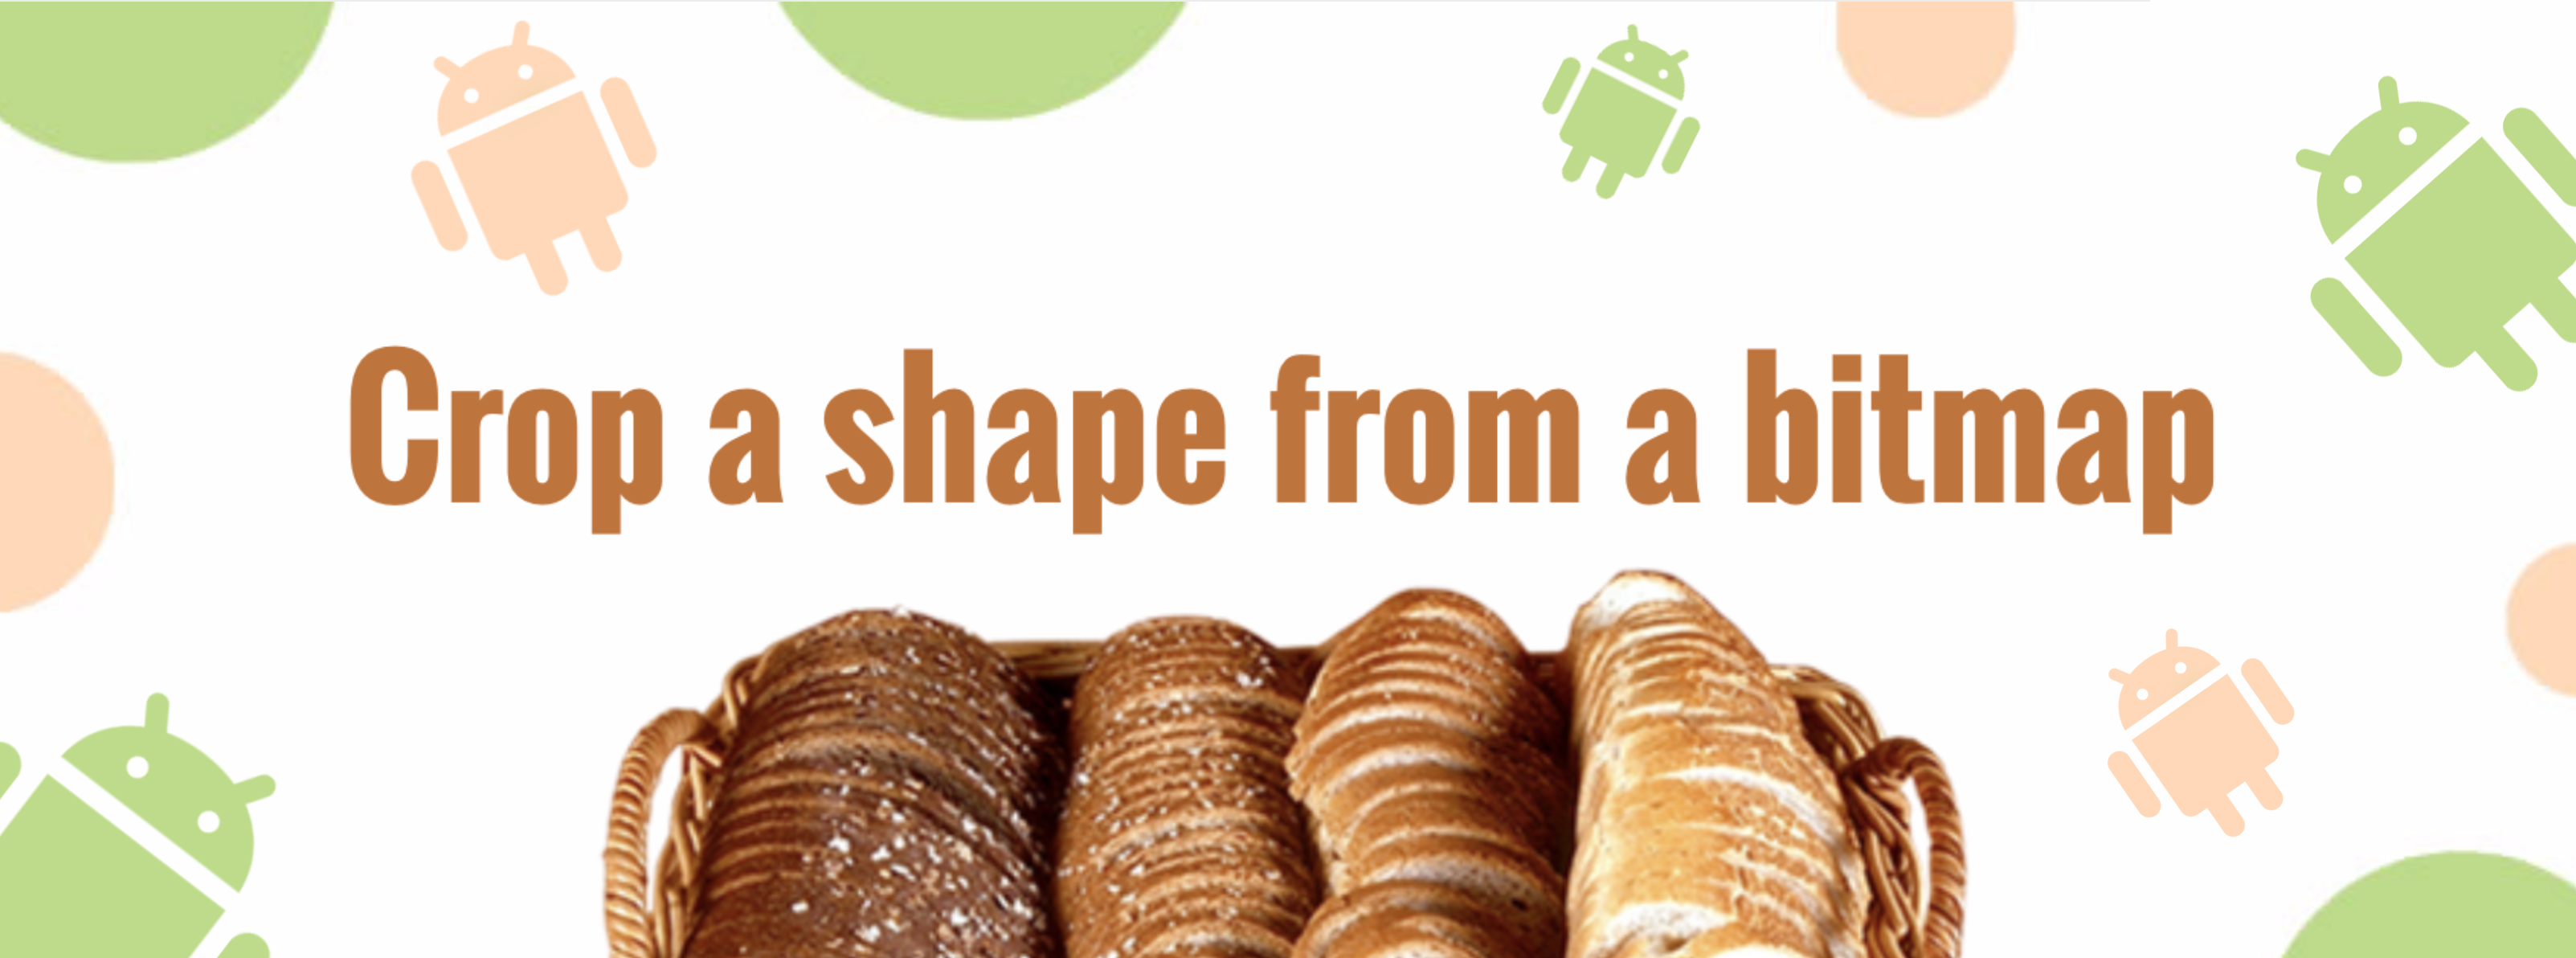 Crop a shape from an Android bitmap - Ahmed Tarek - Medium